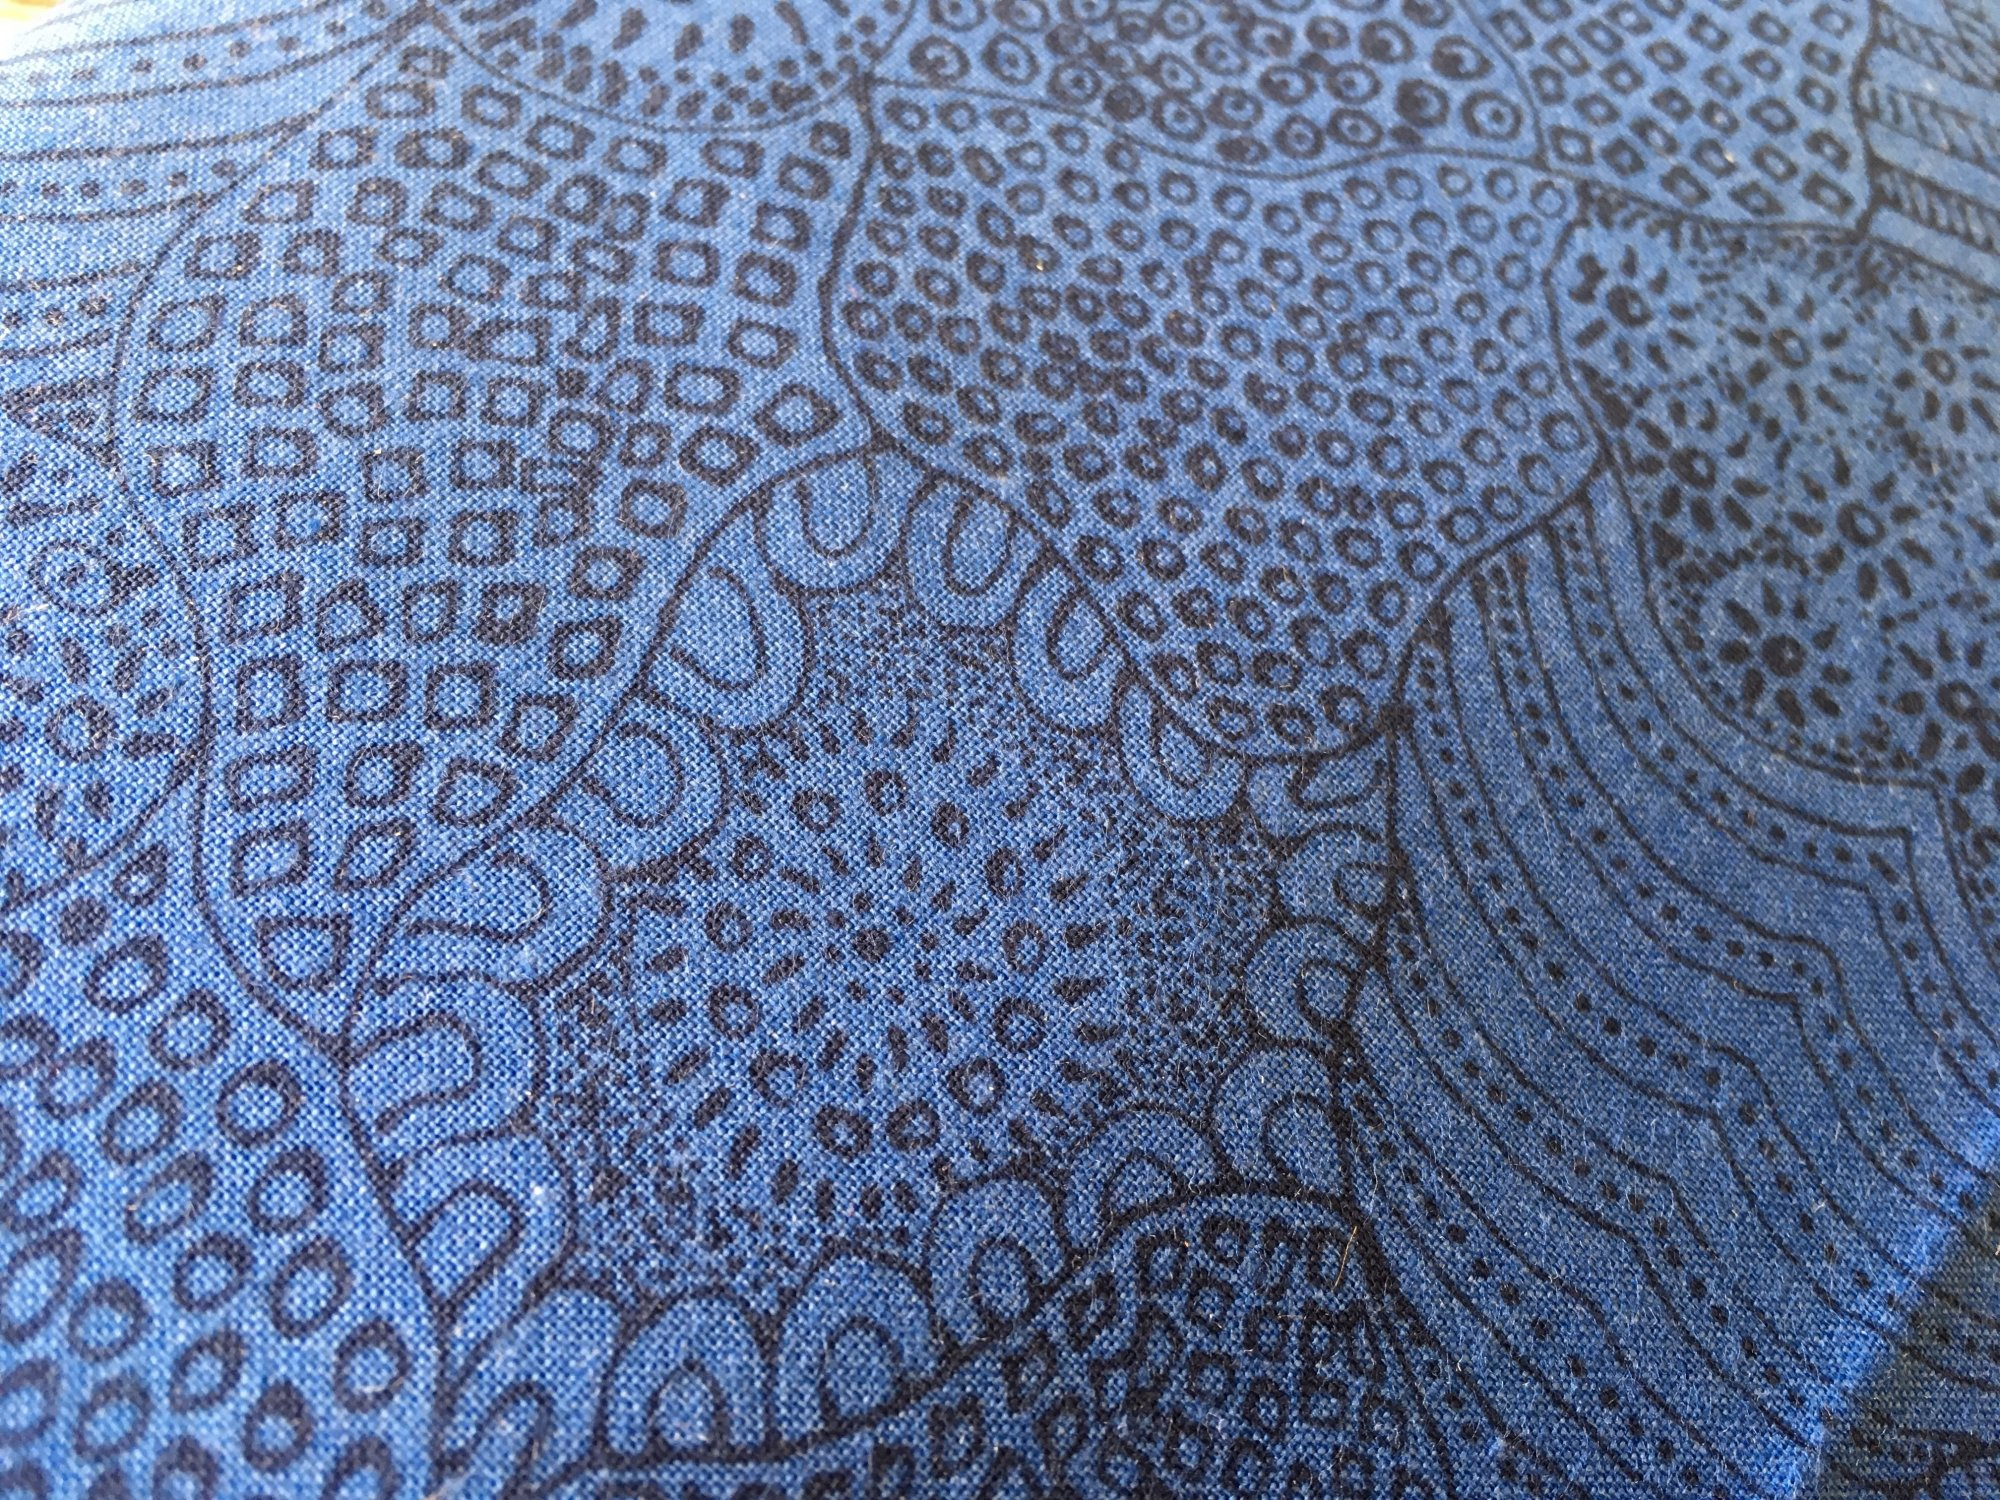 WATERHOLE BLUE WAHBL by M&S Textiles